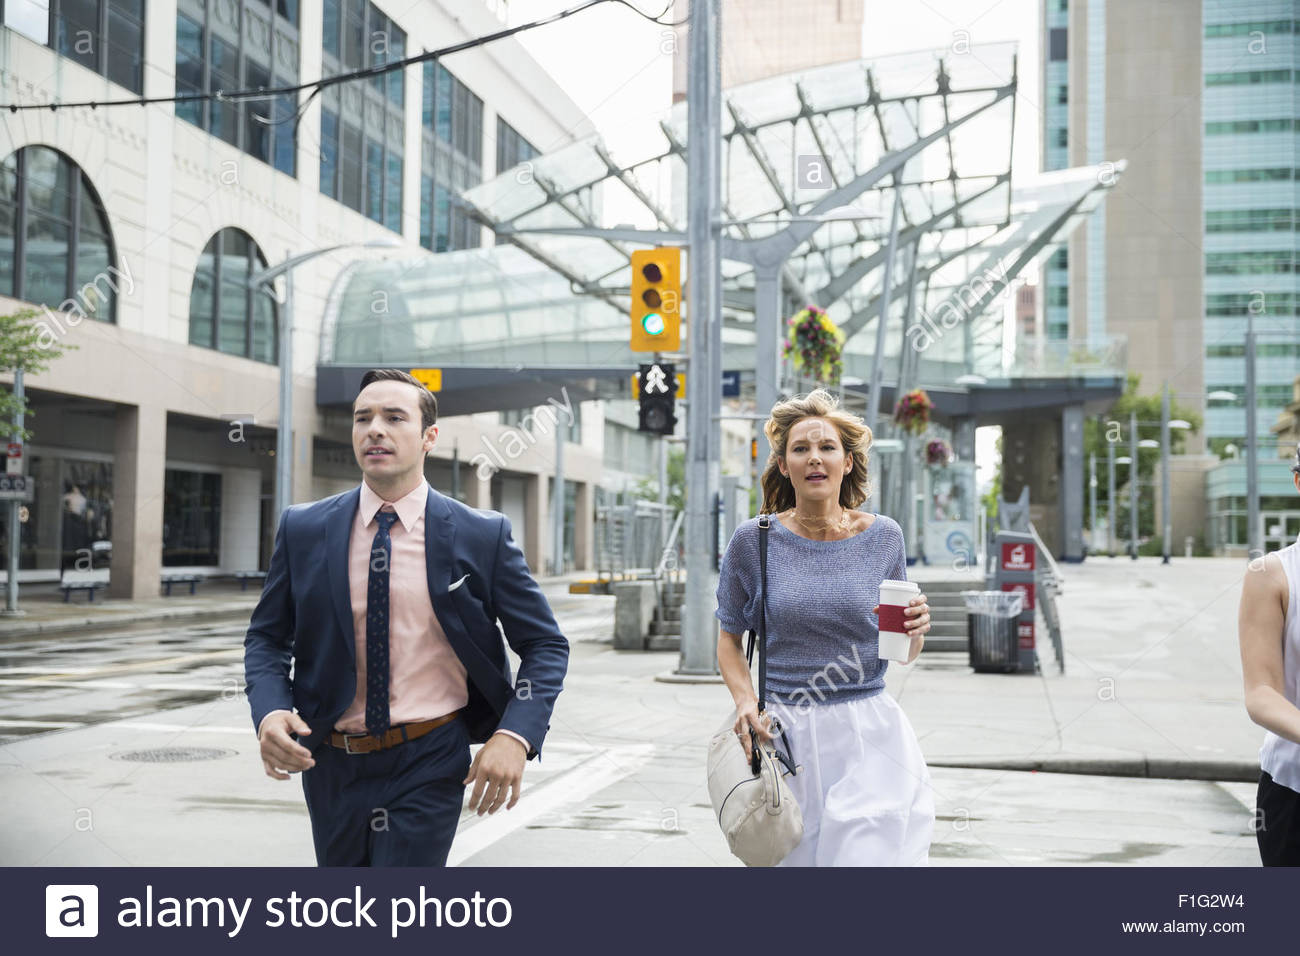 Business people rushing in crosswalk on urban street - Stock Image